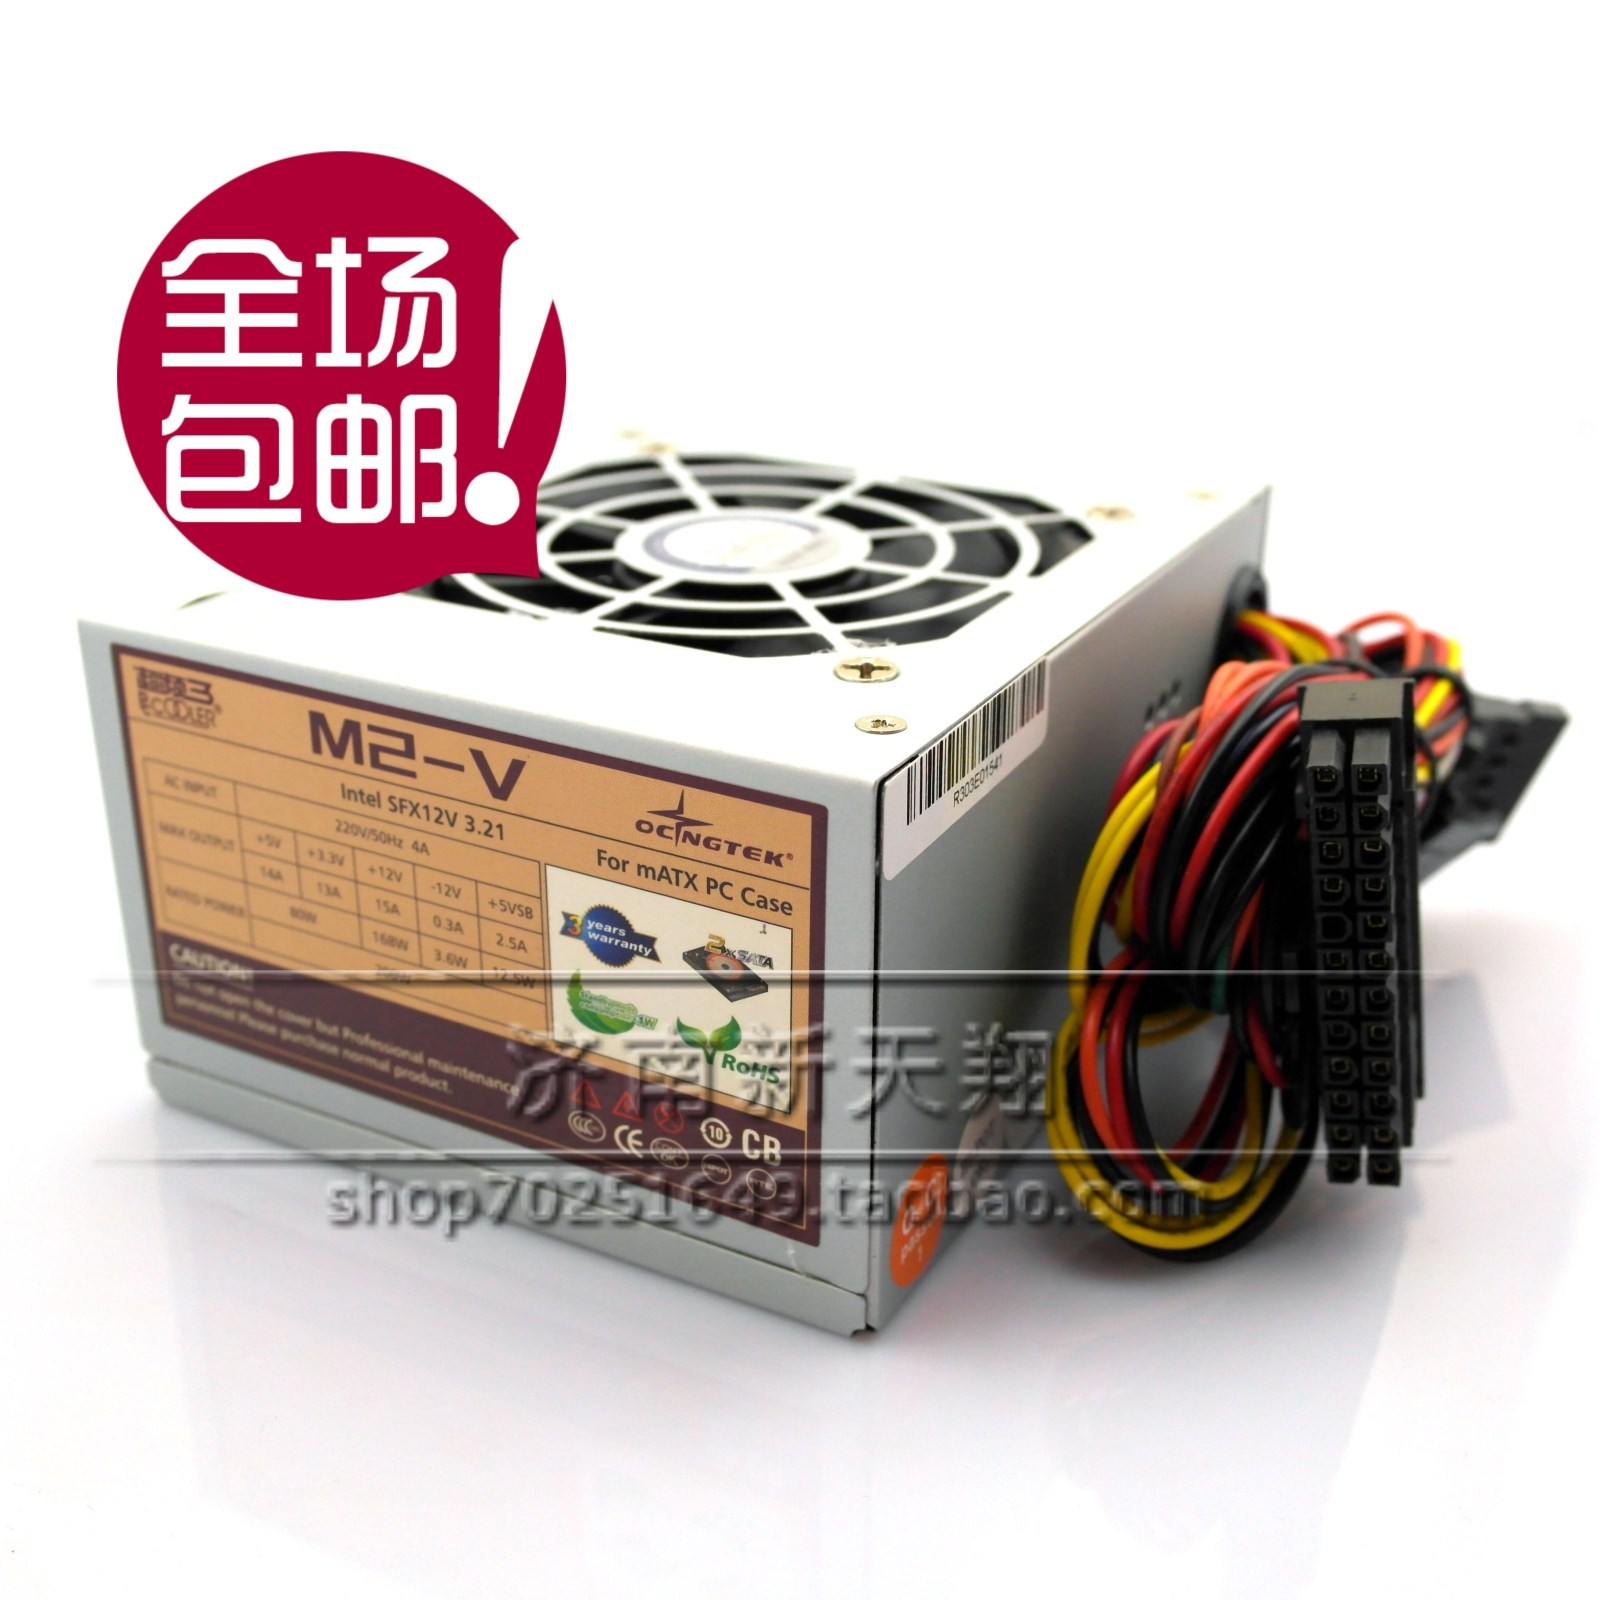 Quality goods bag mail: overclocking 3 m2 - V type chassis power supply Mute the cooling experts